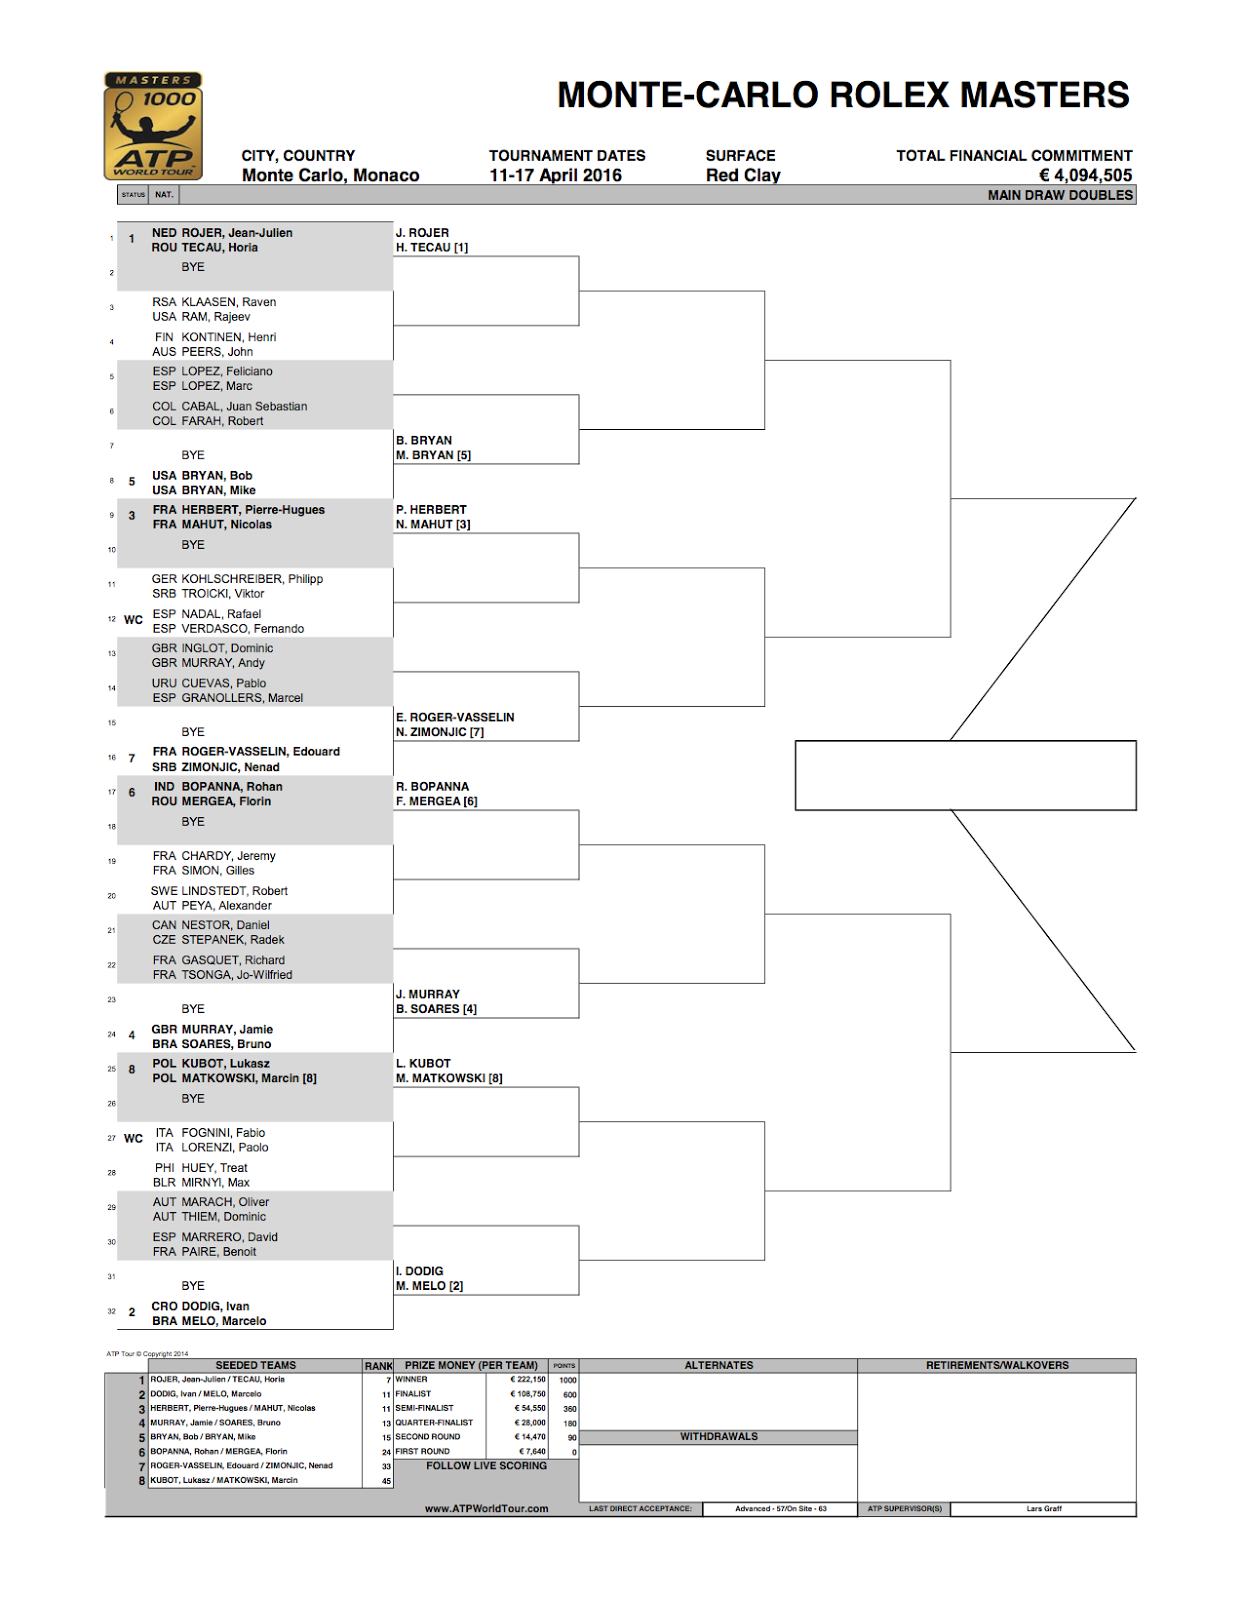 Rafaholics Mcrolexmasters Singles Amp Doubles Draw